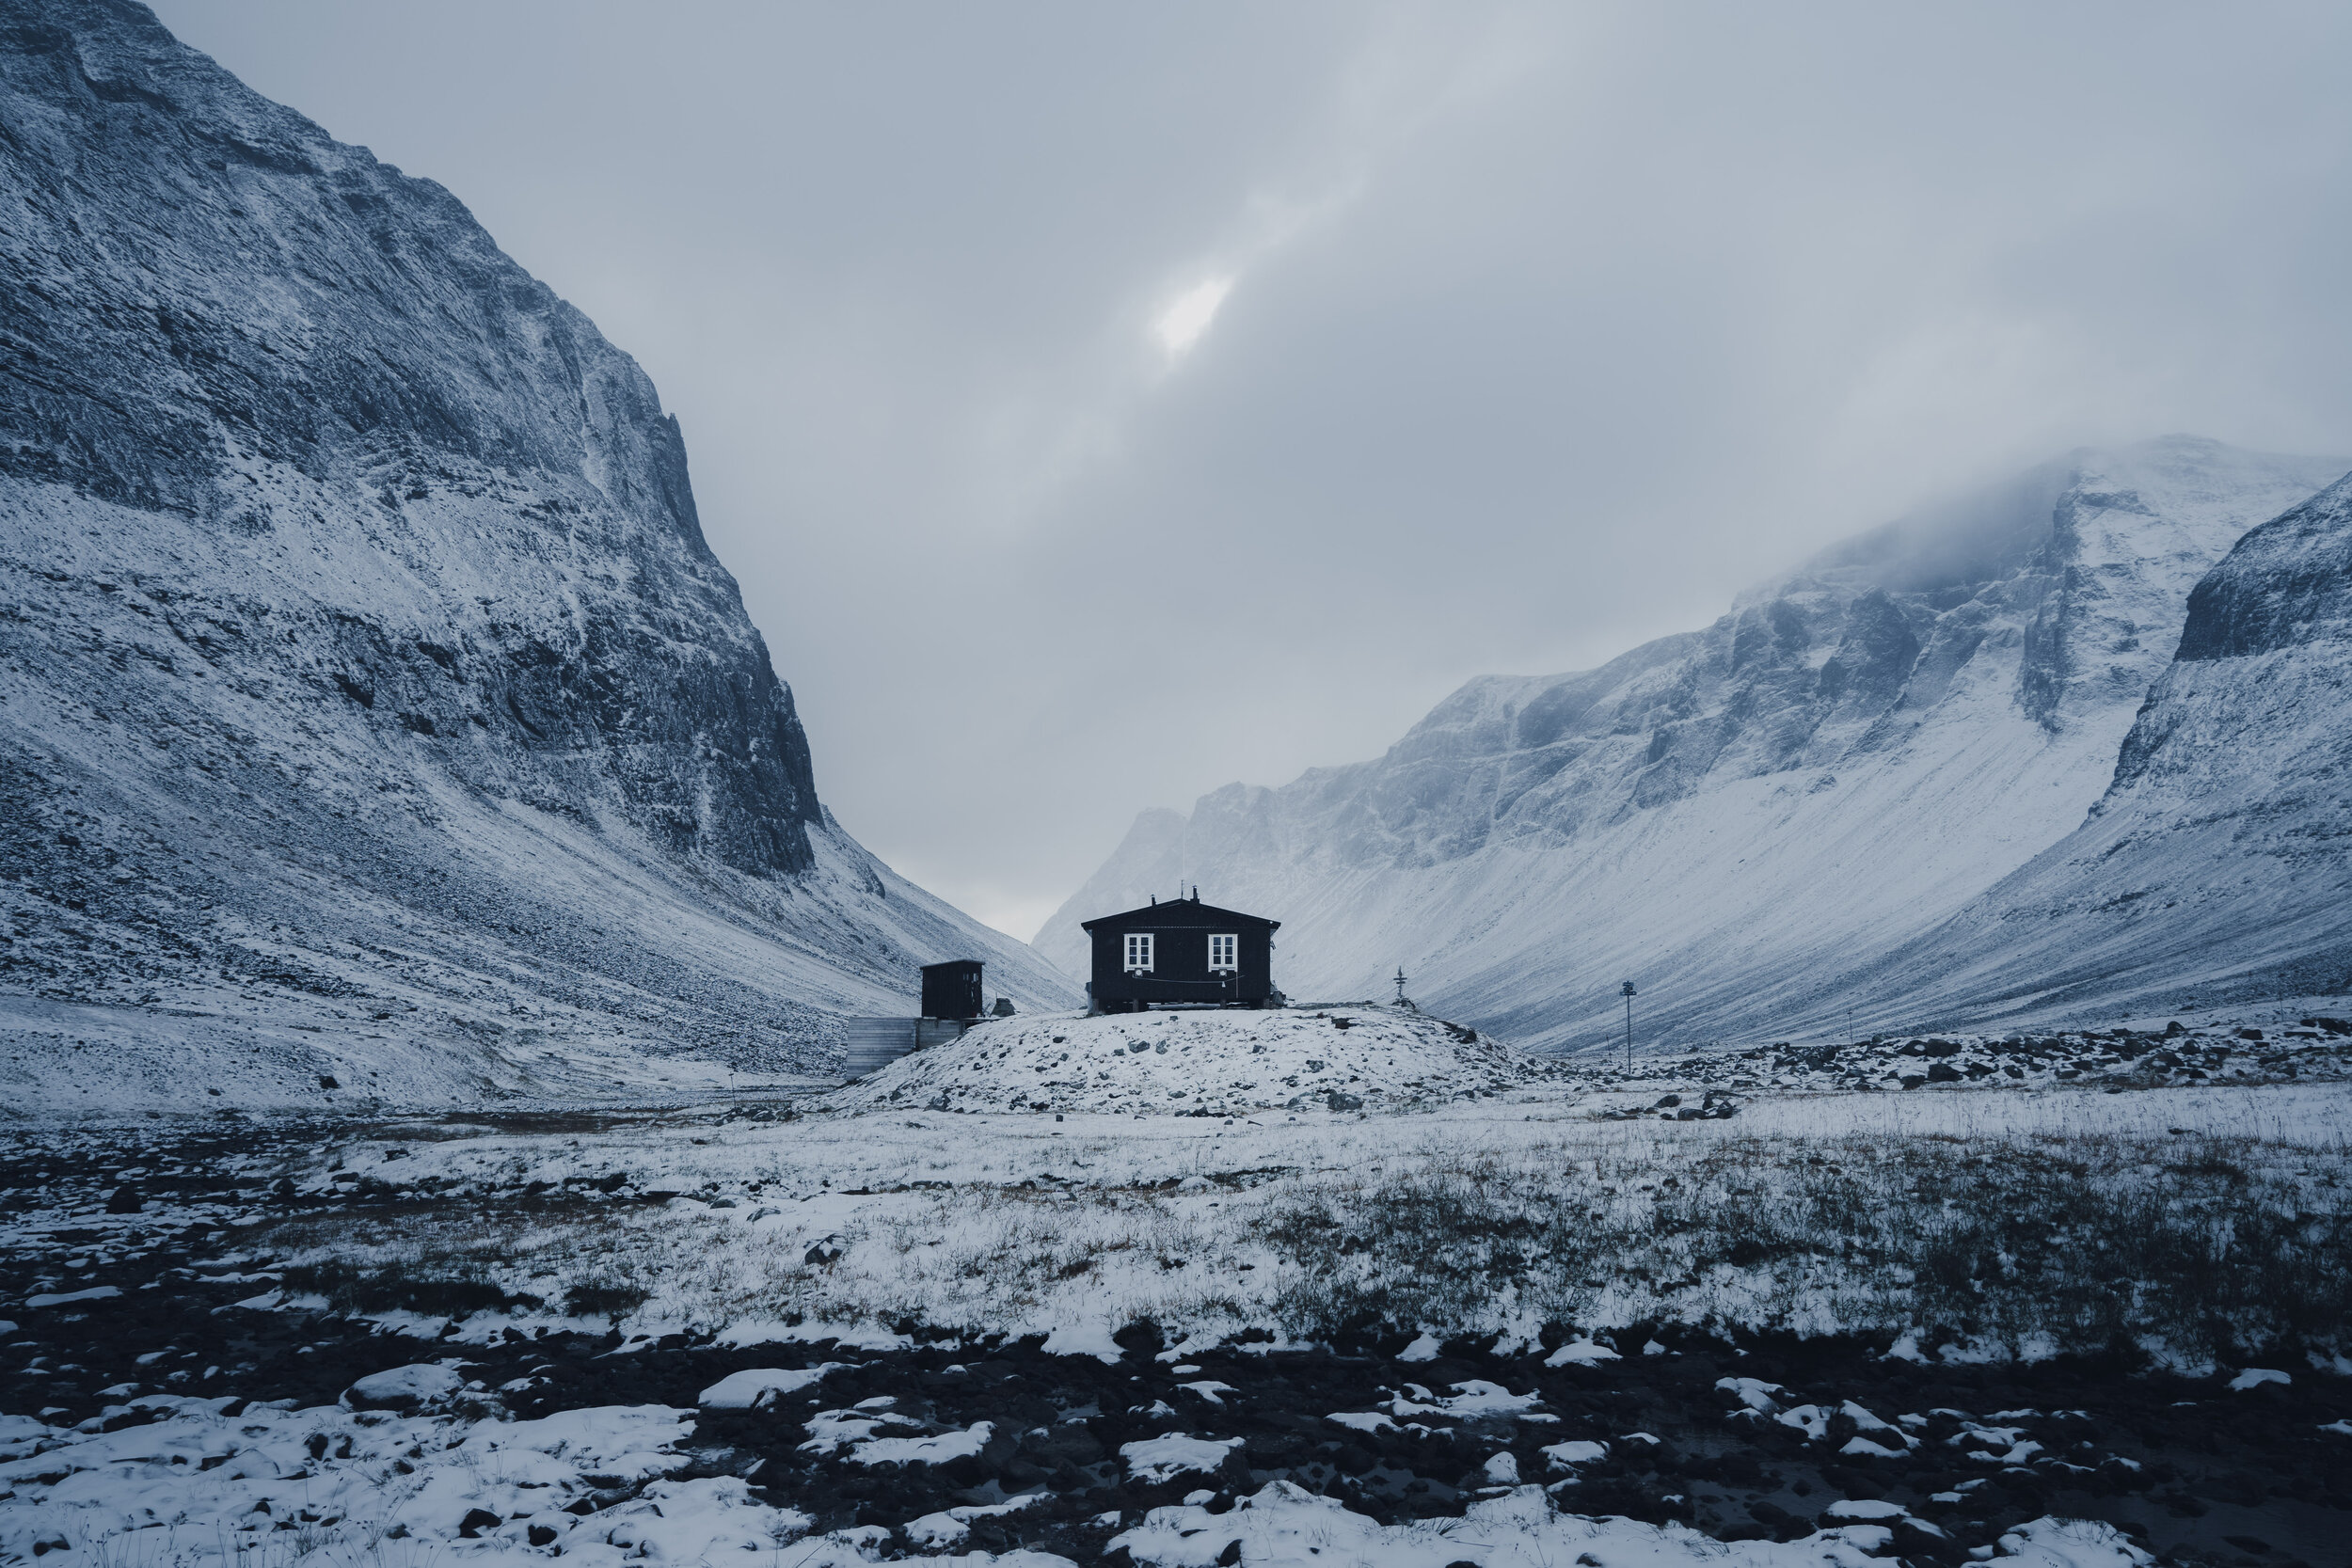 The Nallo hut looking small below the steep mountain sides.